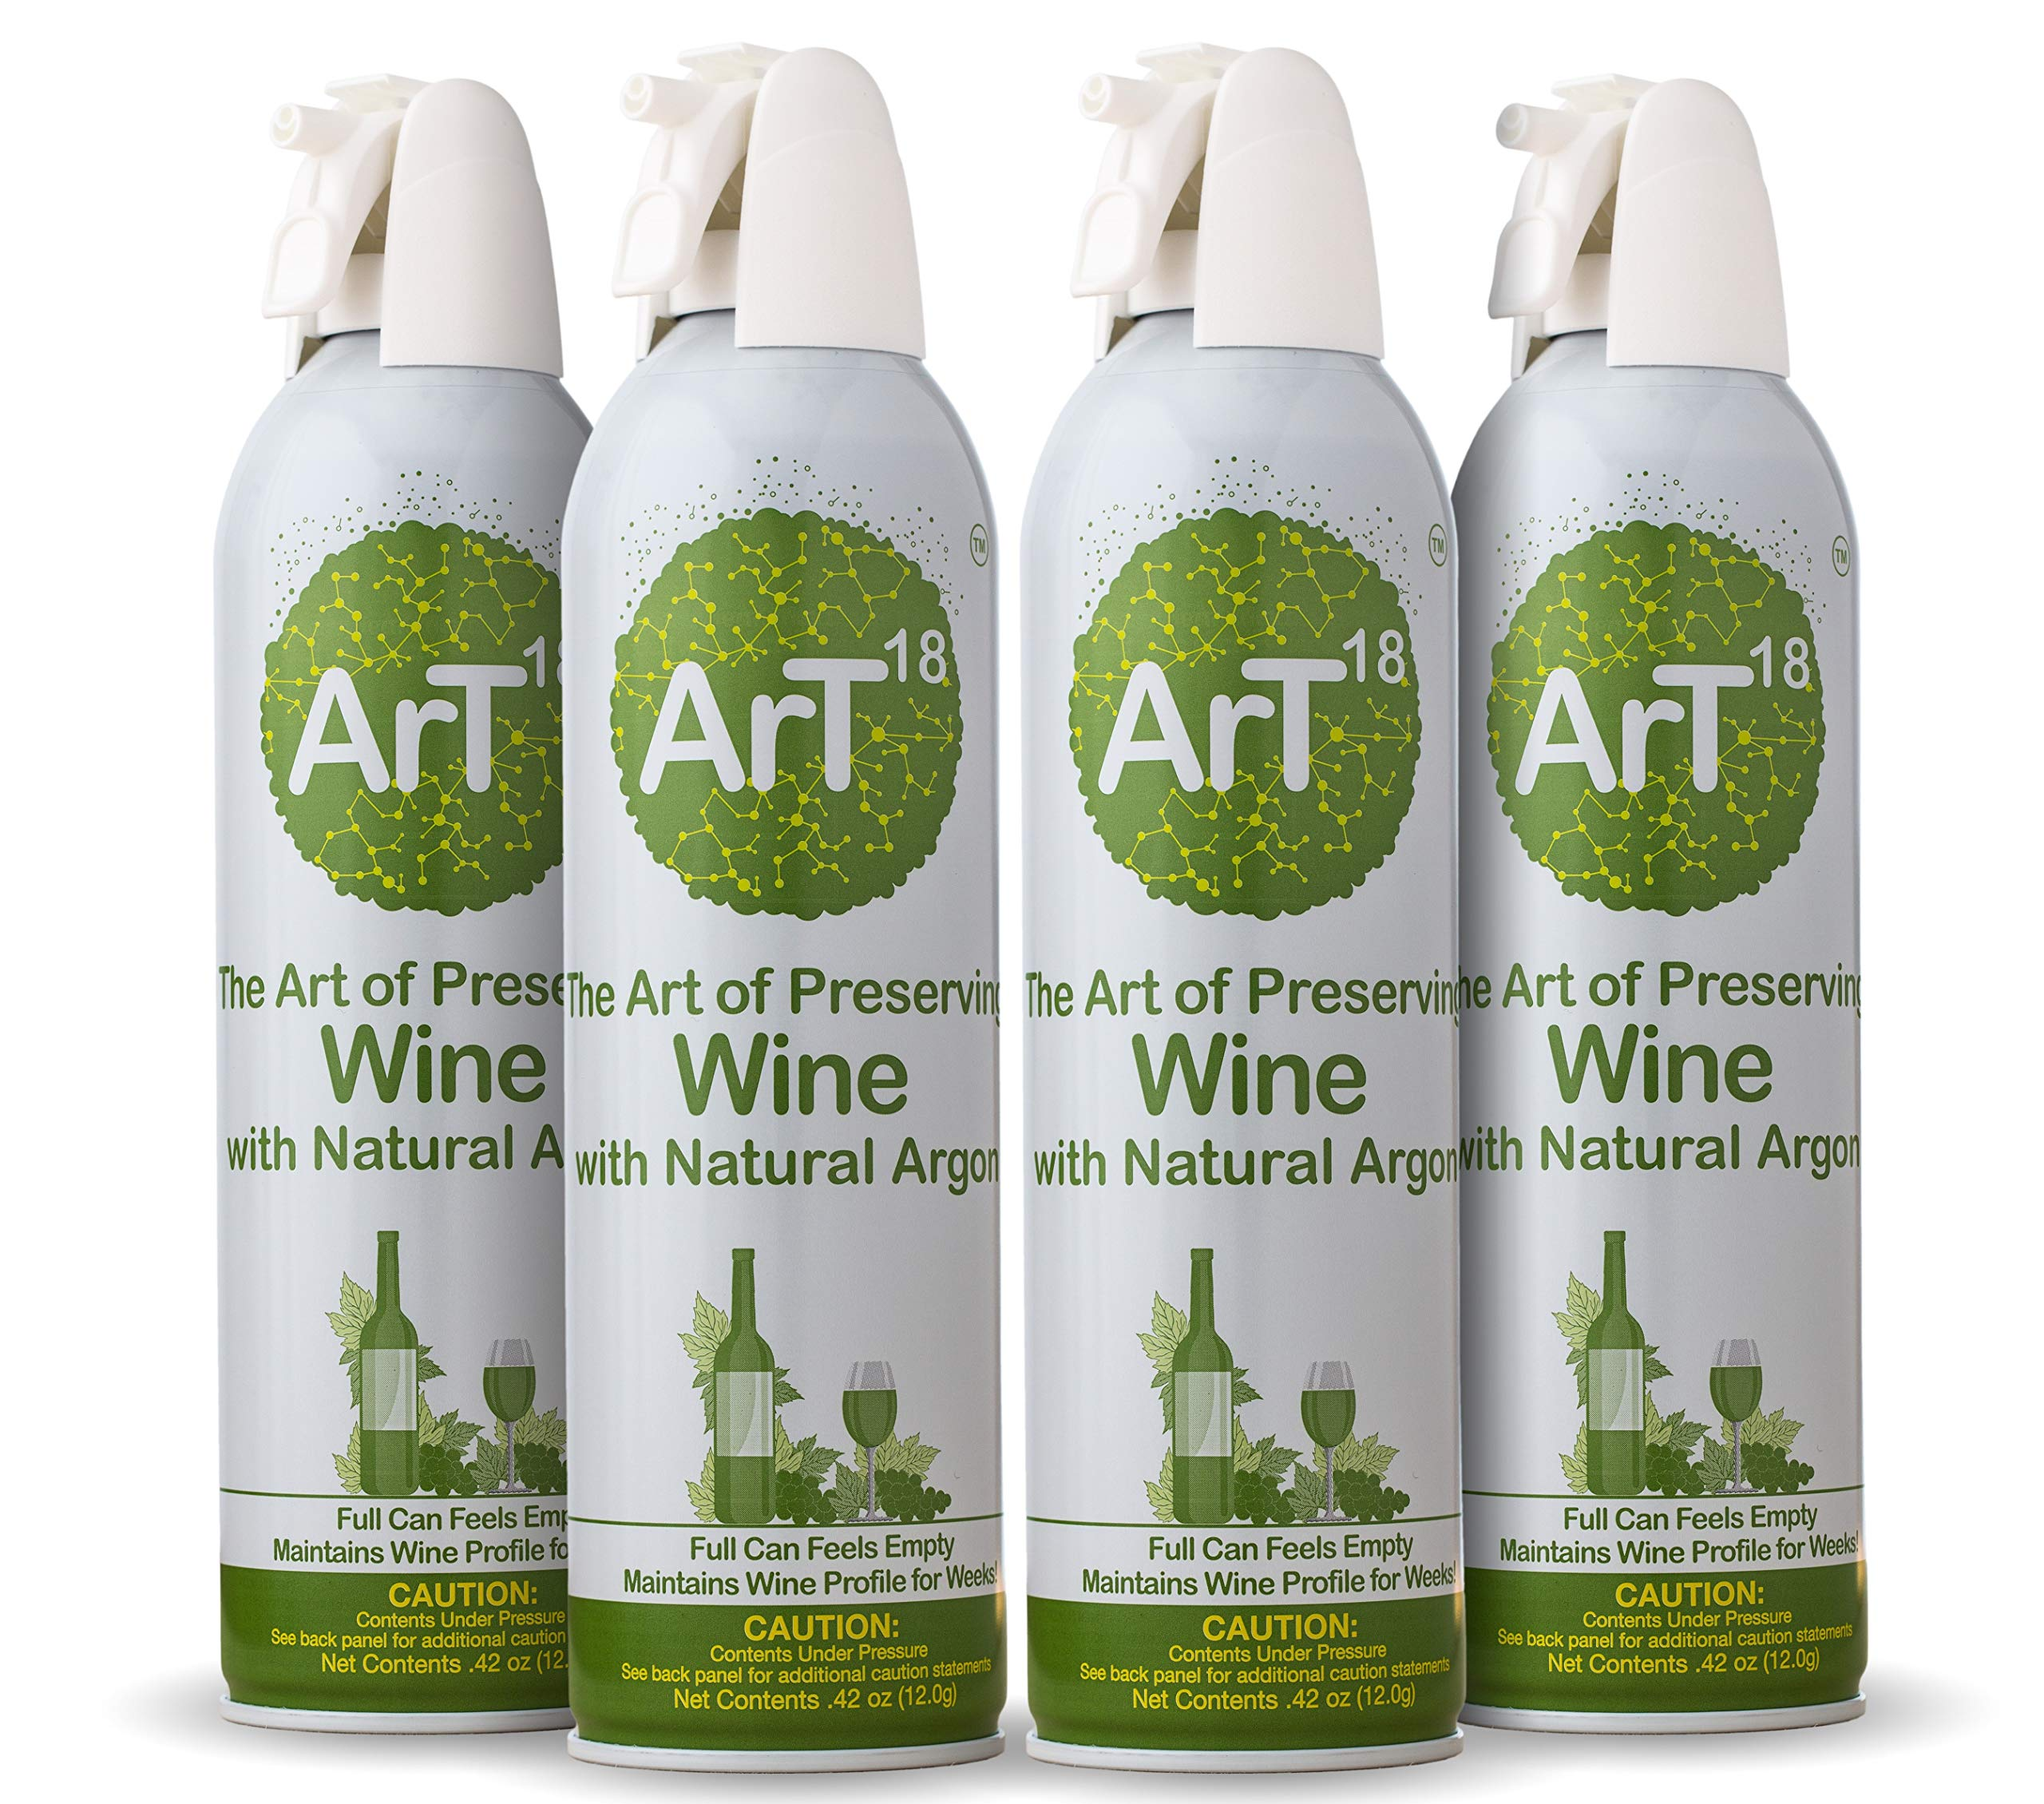 ArT Wine Saver and Bottle Stopper, Pure Argon Spray Can, Use up to 130 Times (4 Pack) by ArT Wine Preserver